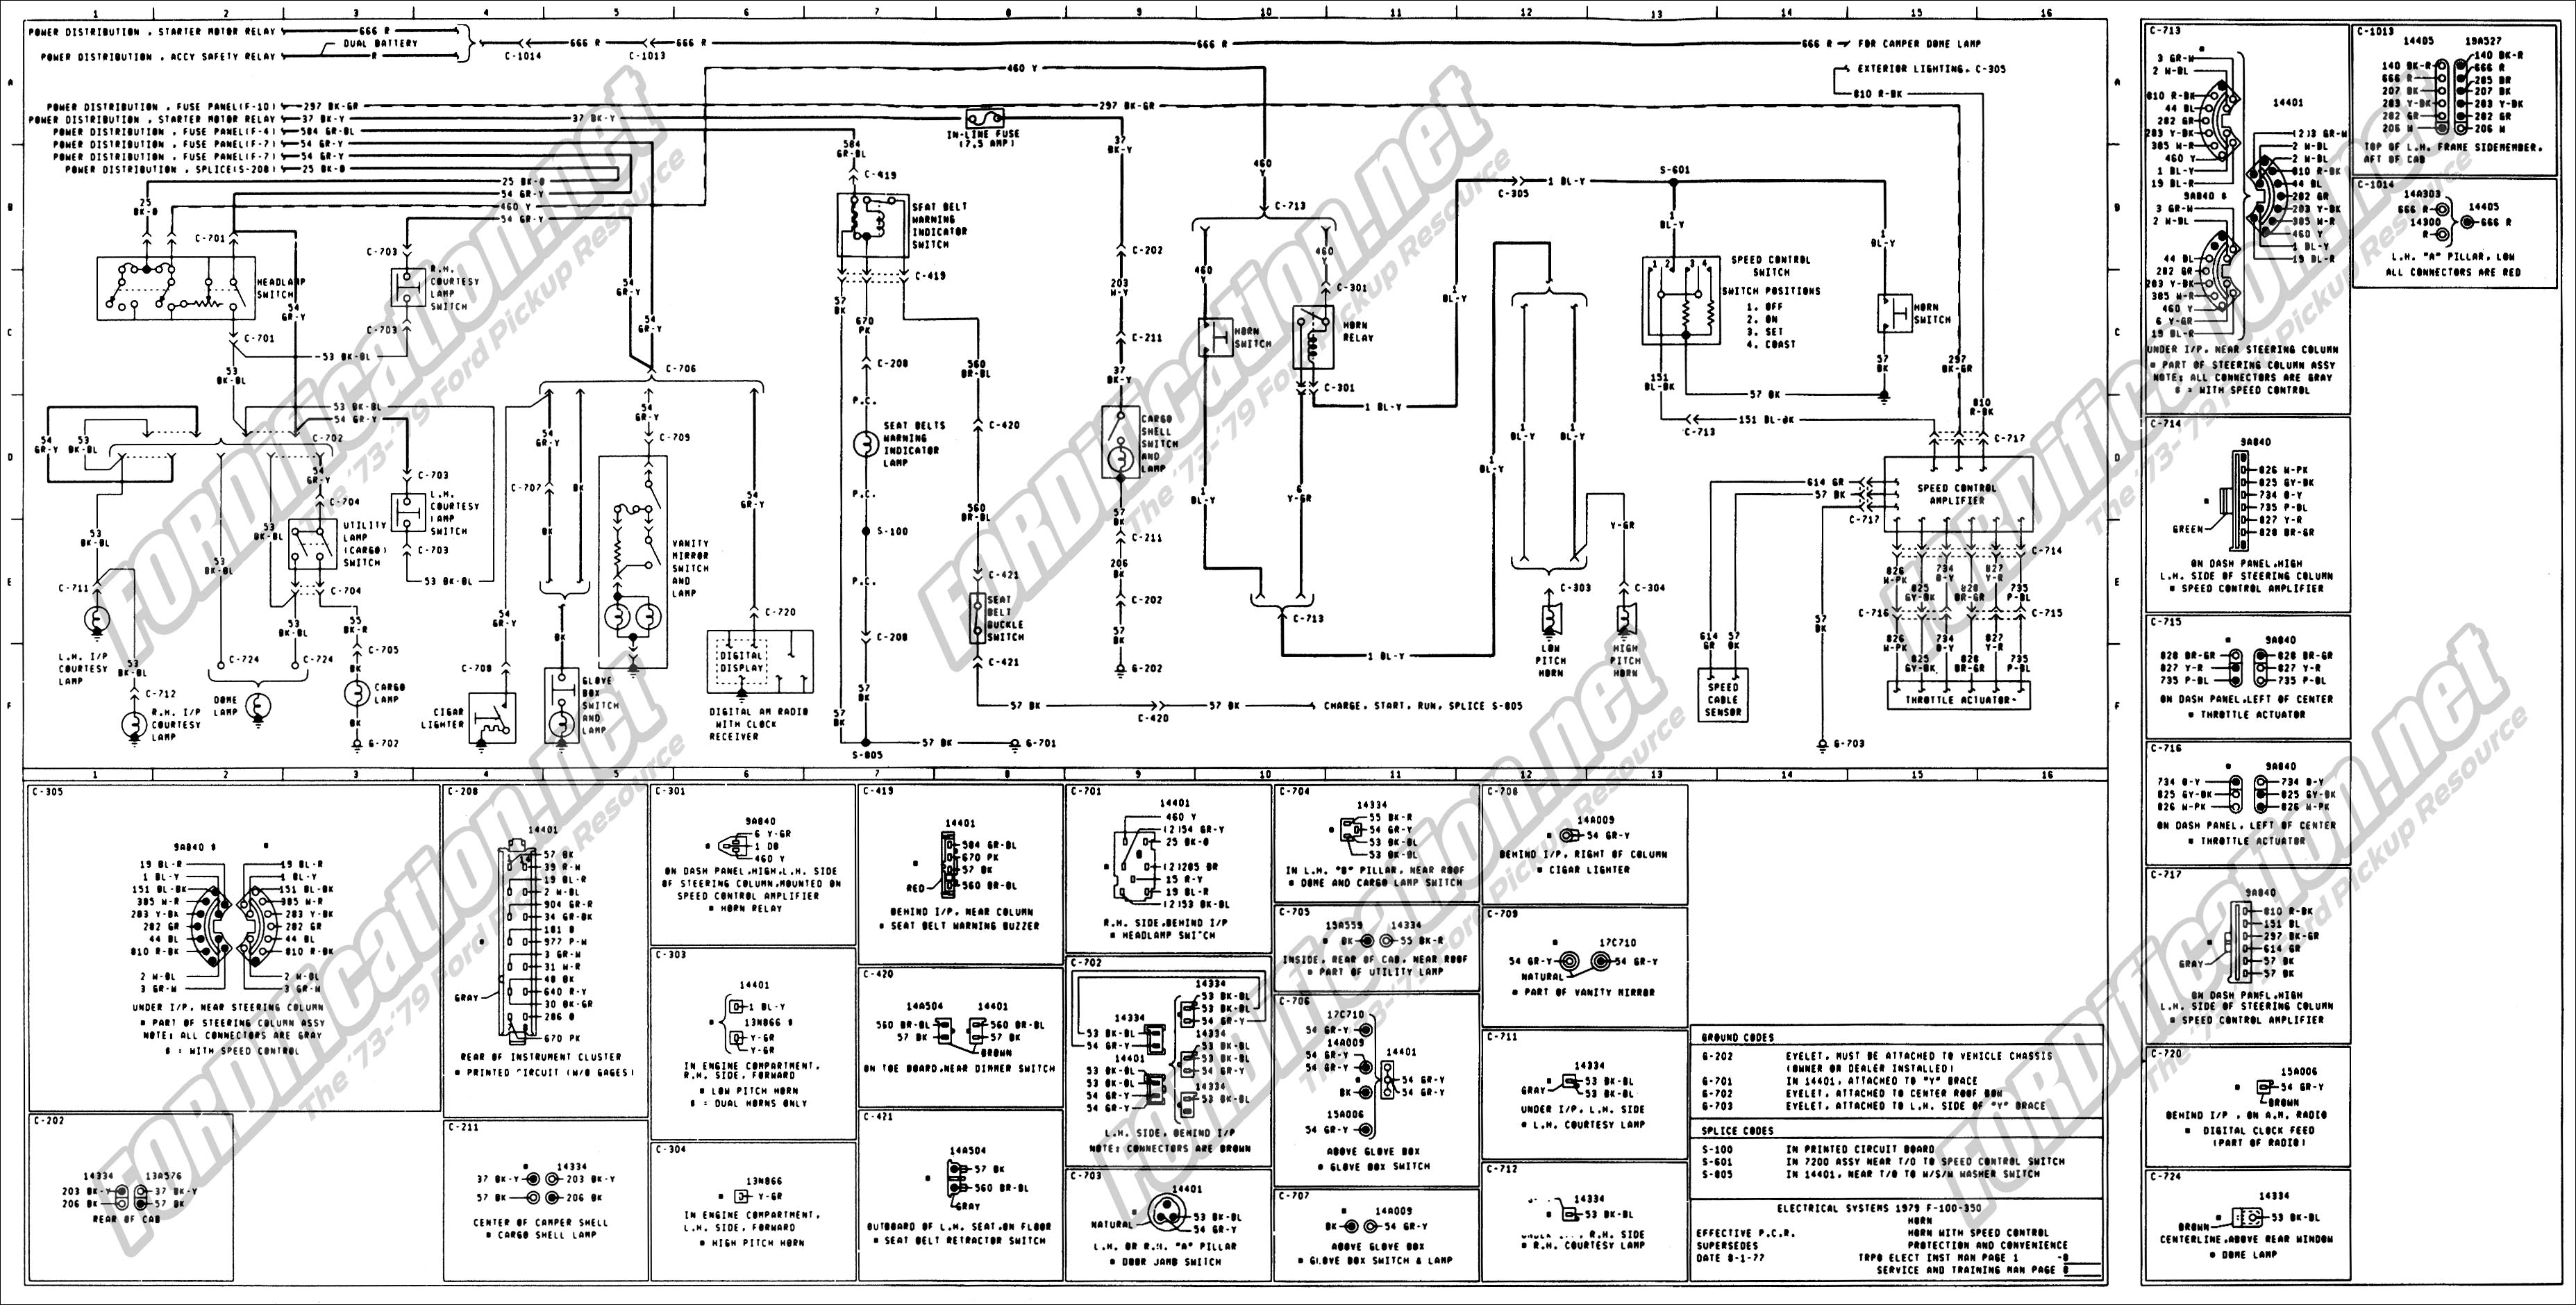 1973 1979 Ford Truck Wiring Diagrams & Schematics Fordification Net Ford  Bronco Wiring Diagram 1979 Ford E150 Wiring Diagram